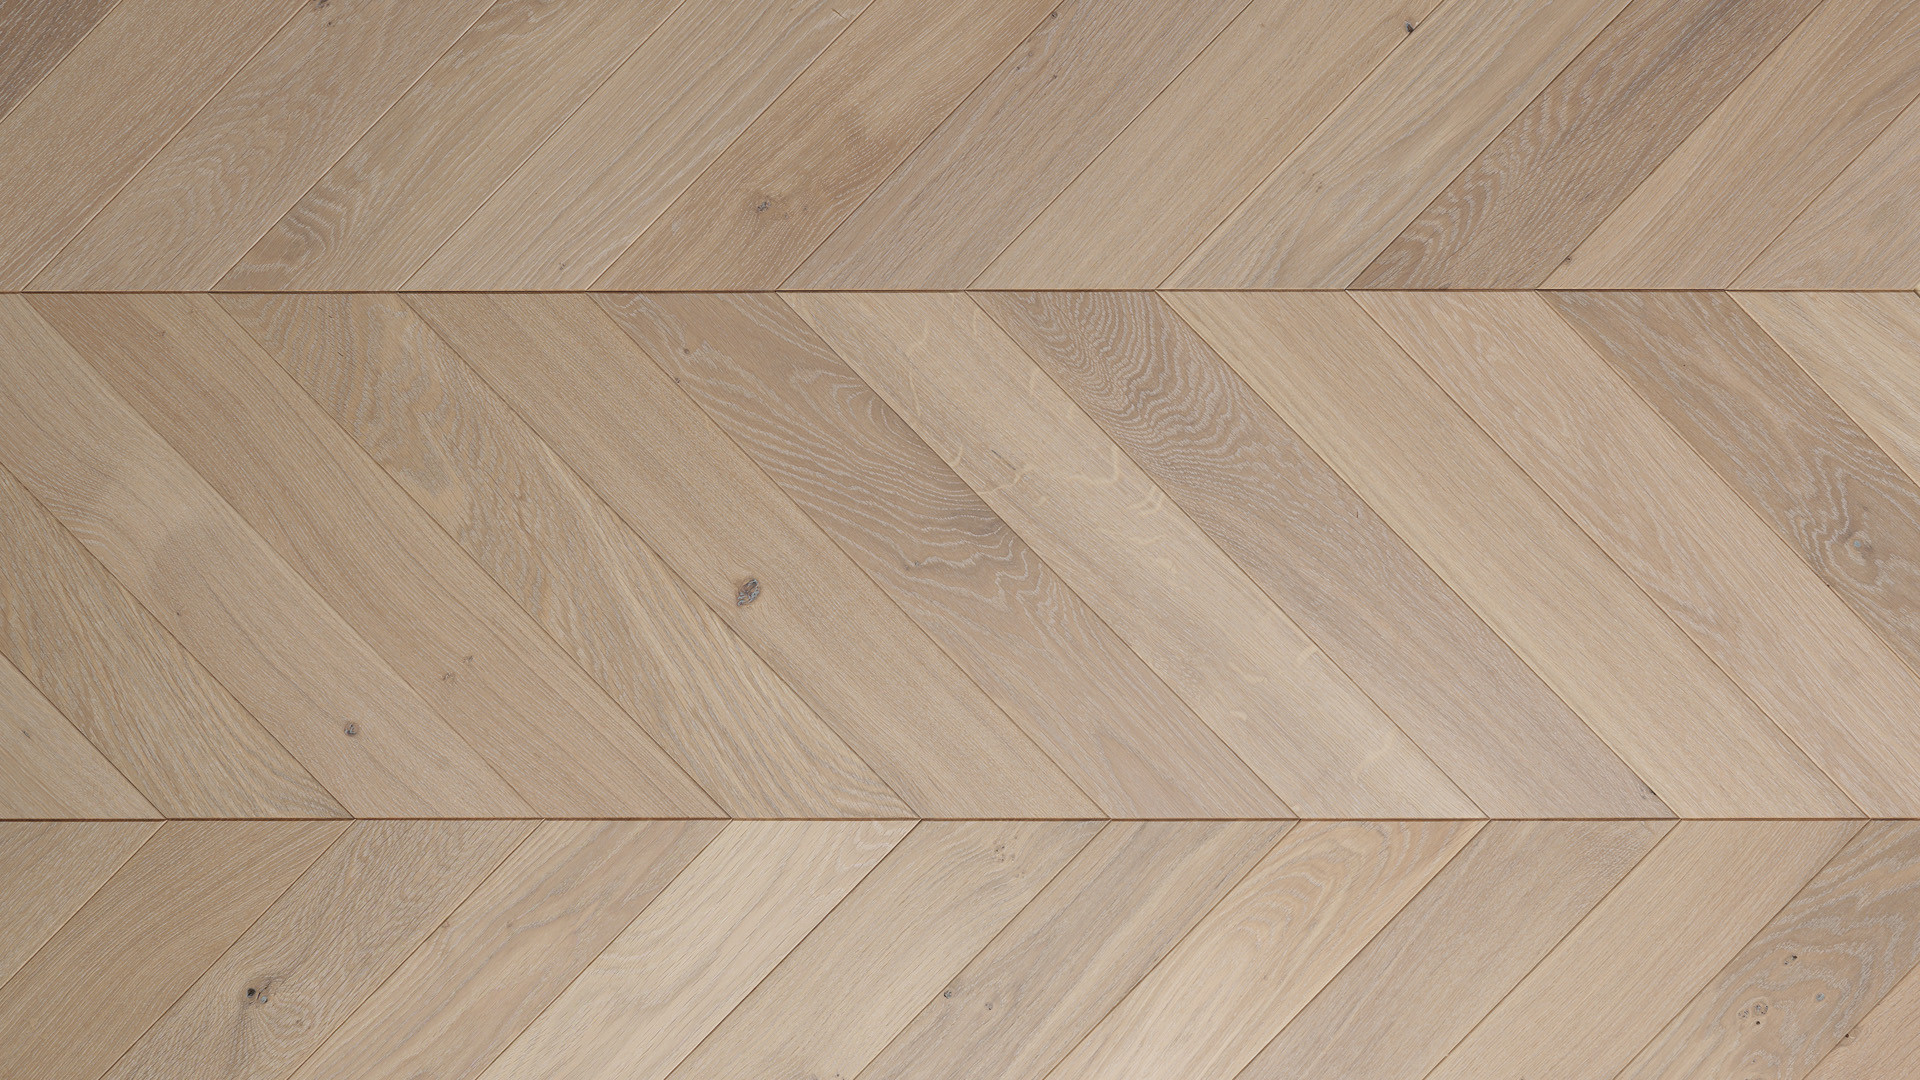 floor french oak authentic tufeau chevron 90 engineered wood floor. Black Bedroom Furniture Sets. Home Design Ideas